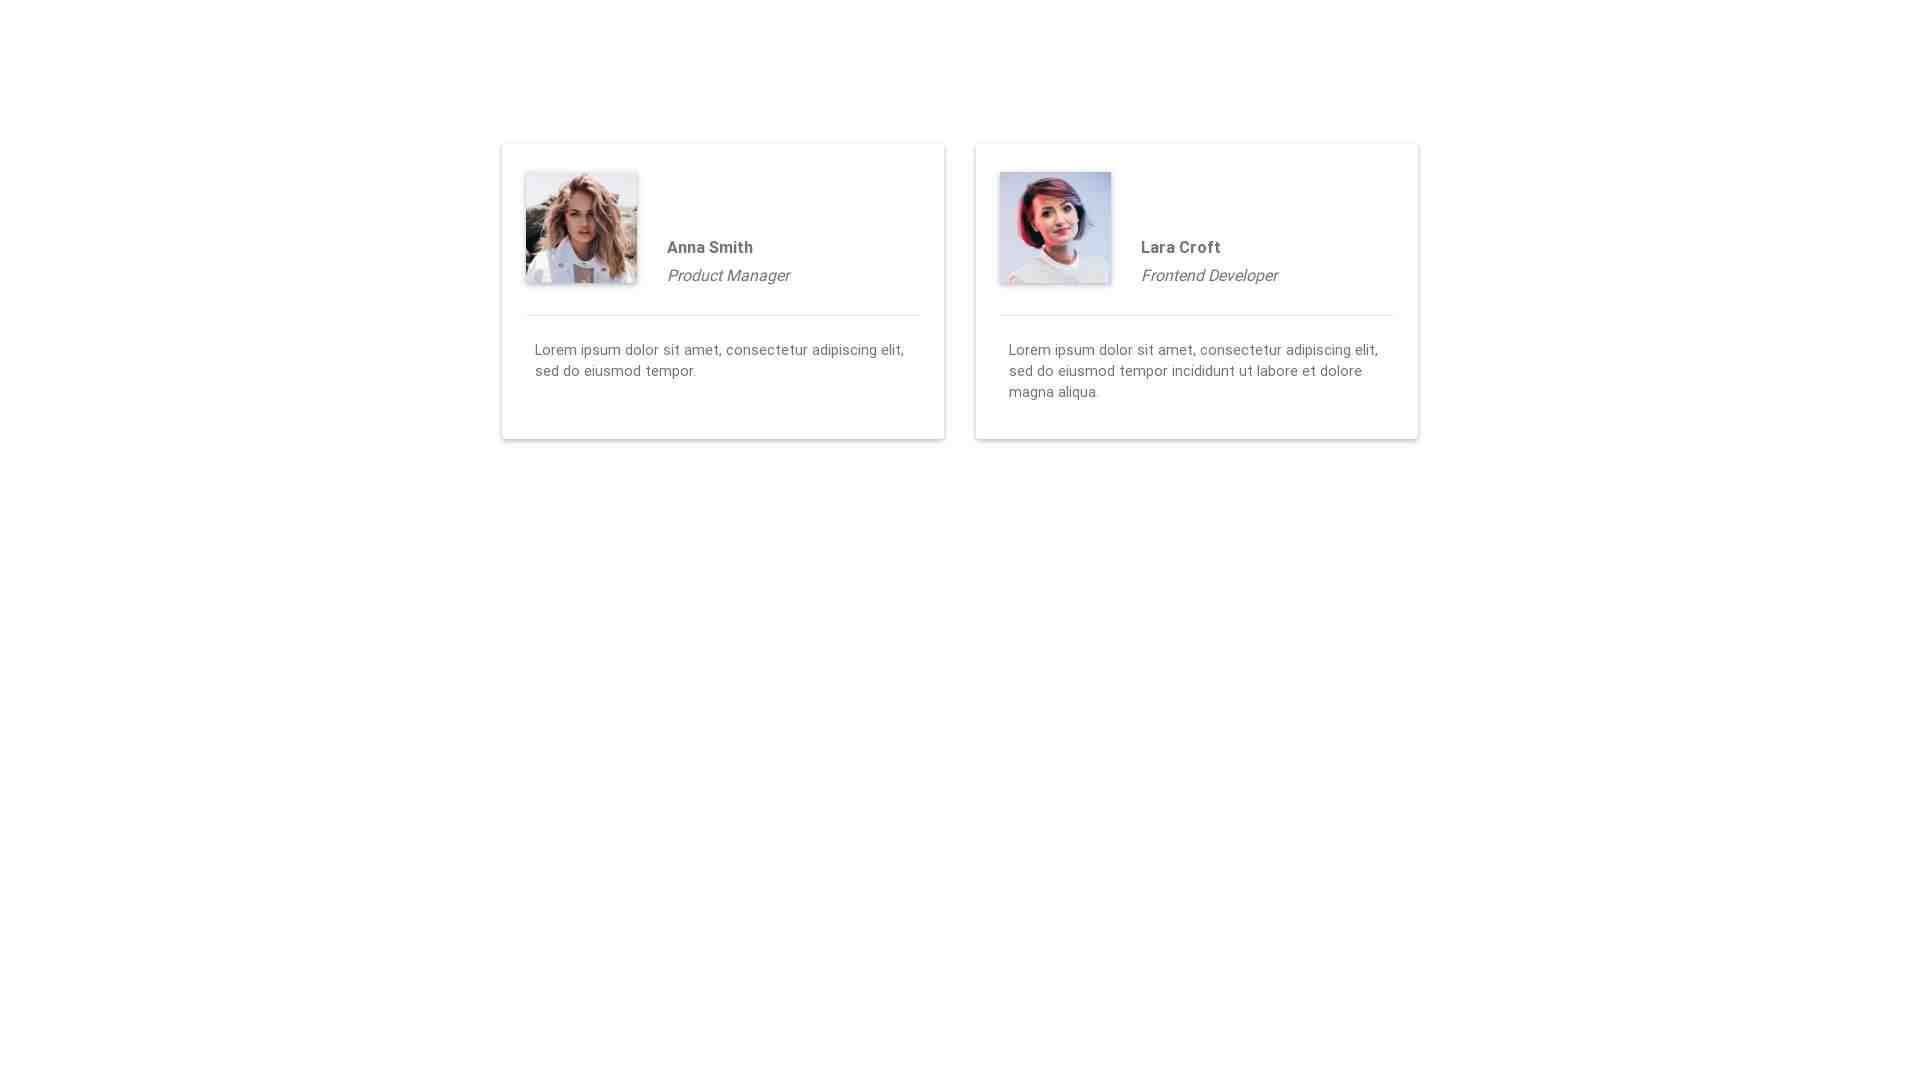 Material Design Blocks - Testimonials 5